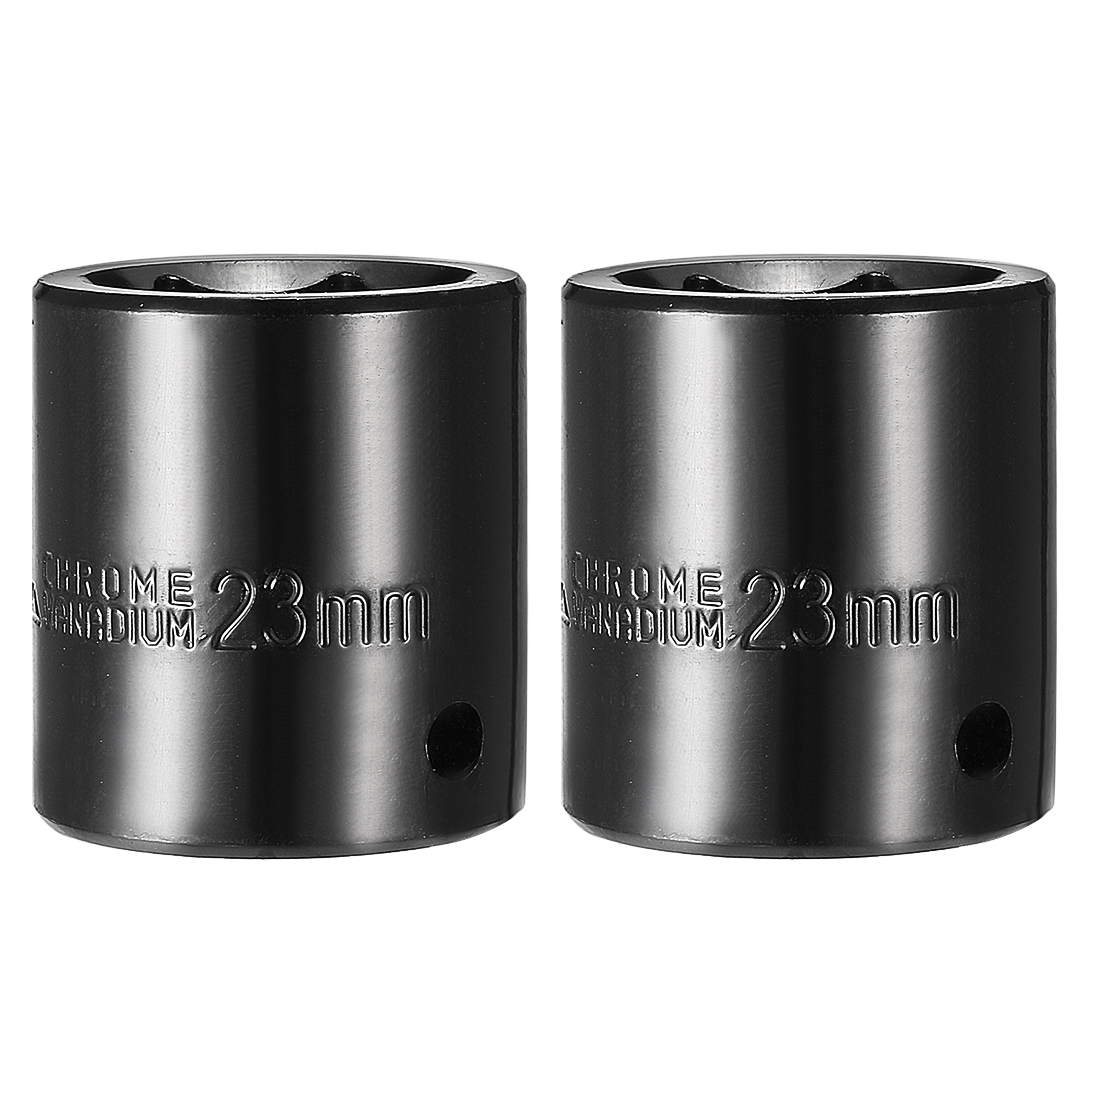 2pcs 1/2-inch Drive 23mm Metric 6-Point Shallow Impact Socket, Cr-V Steel